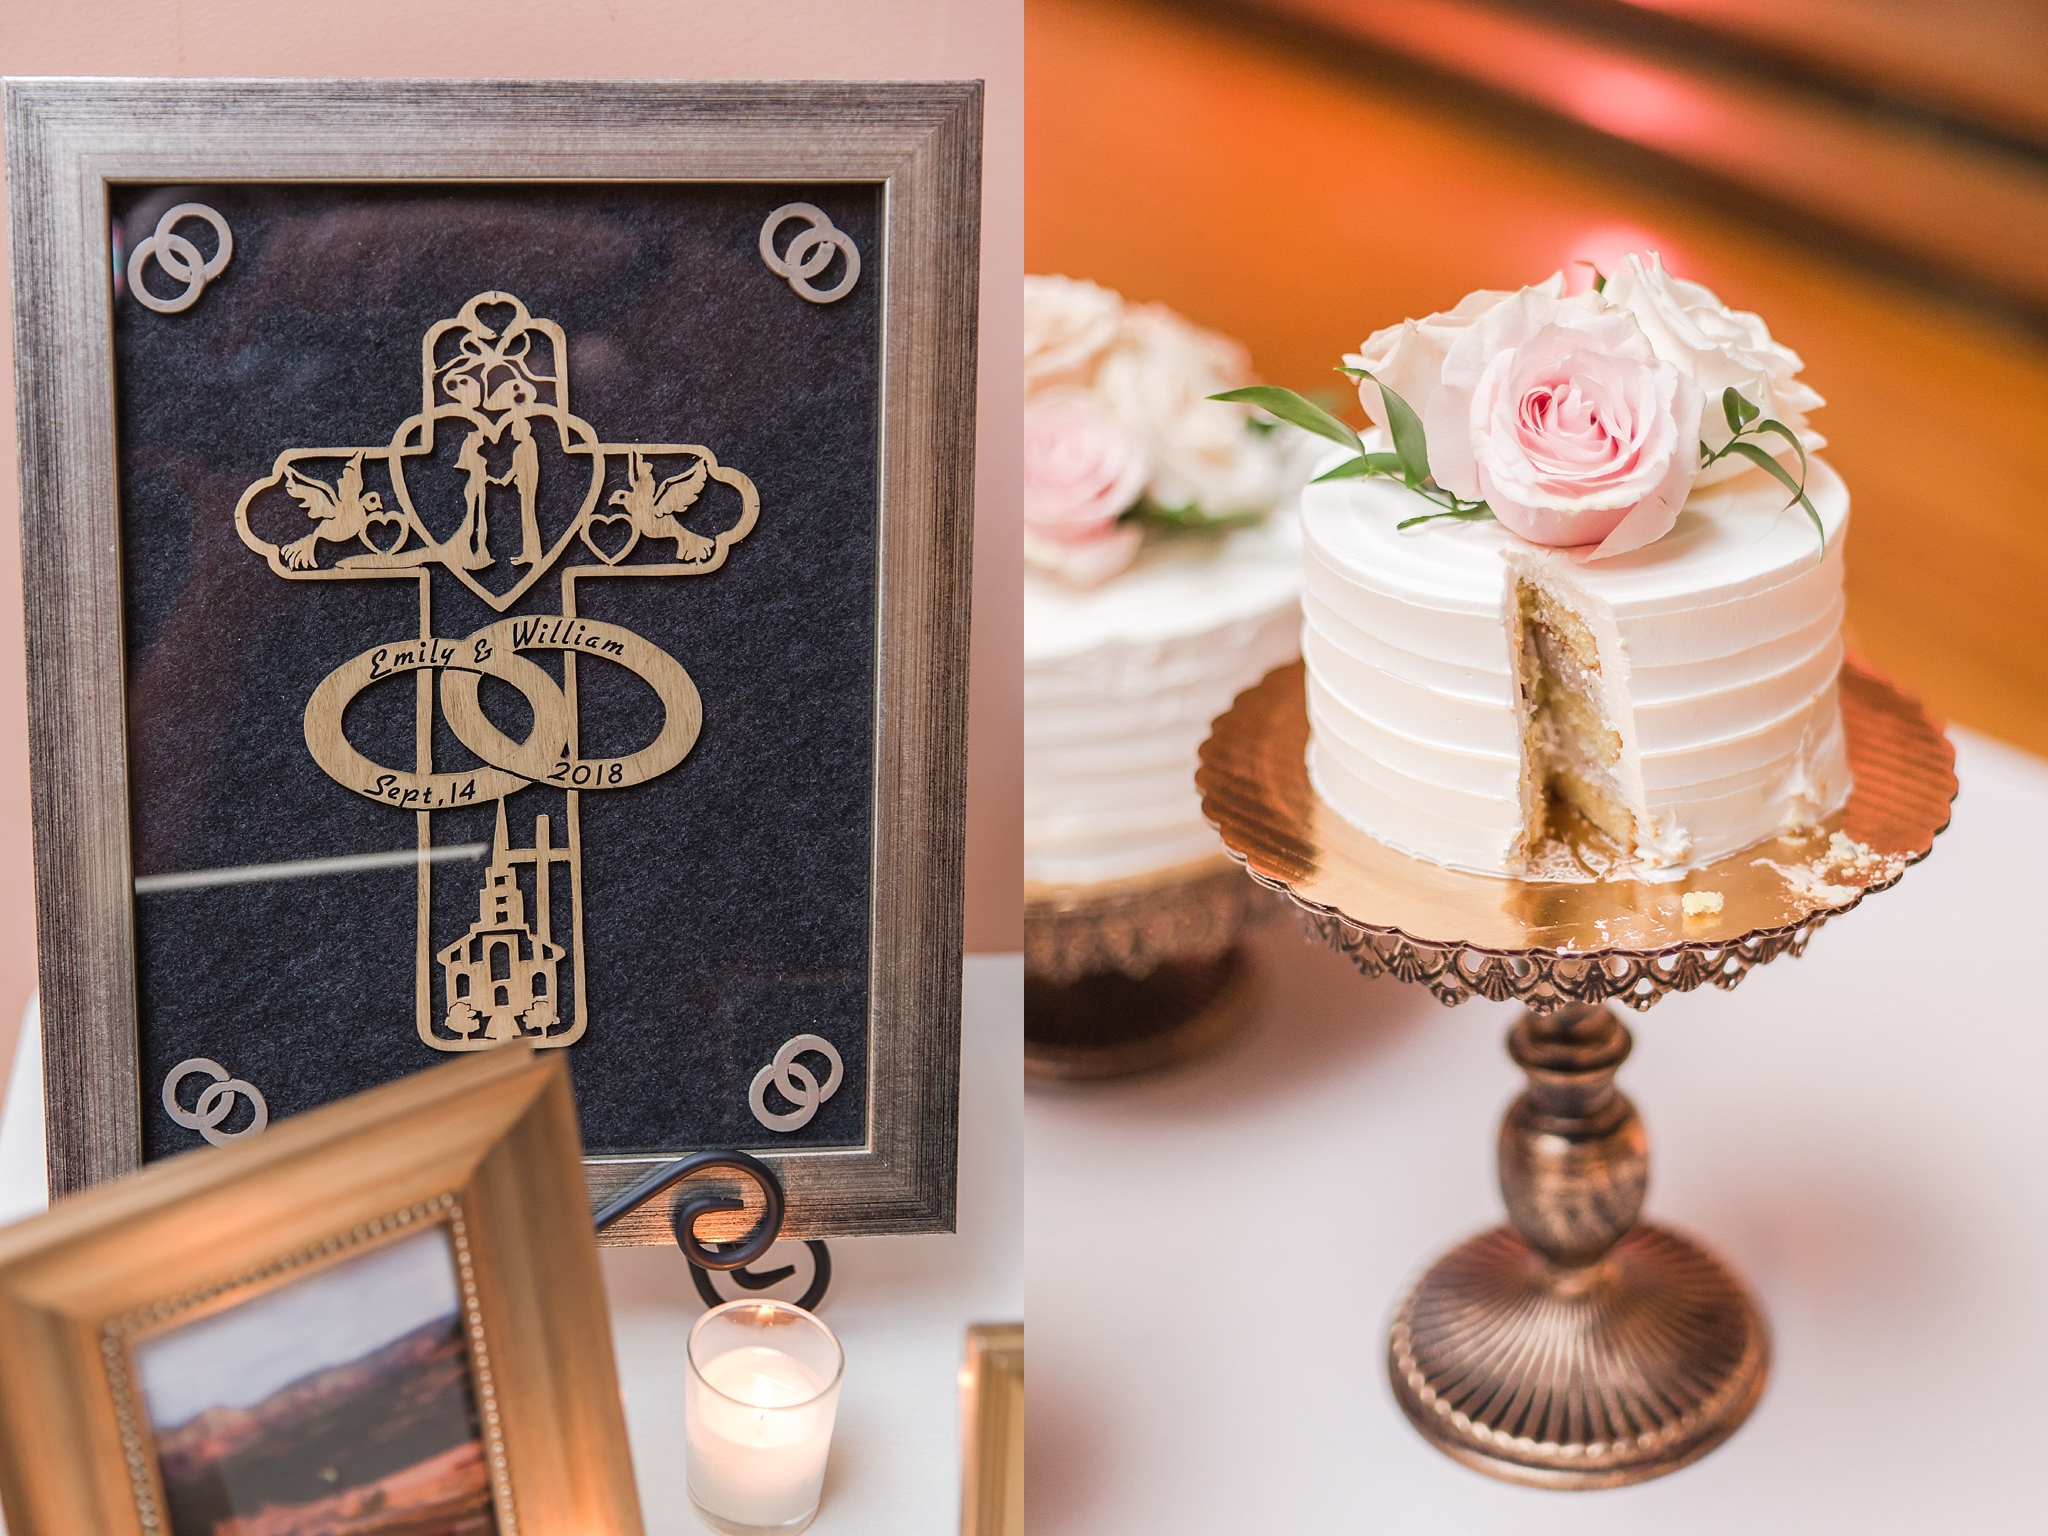 candid-romantic-wedding-photos-at-the-masonic-temple-belle-isle-detroit-institute-of-arts-in-detroit-michigan-by-courtney-carolyn-photography_0090.jpg